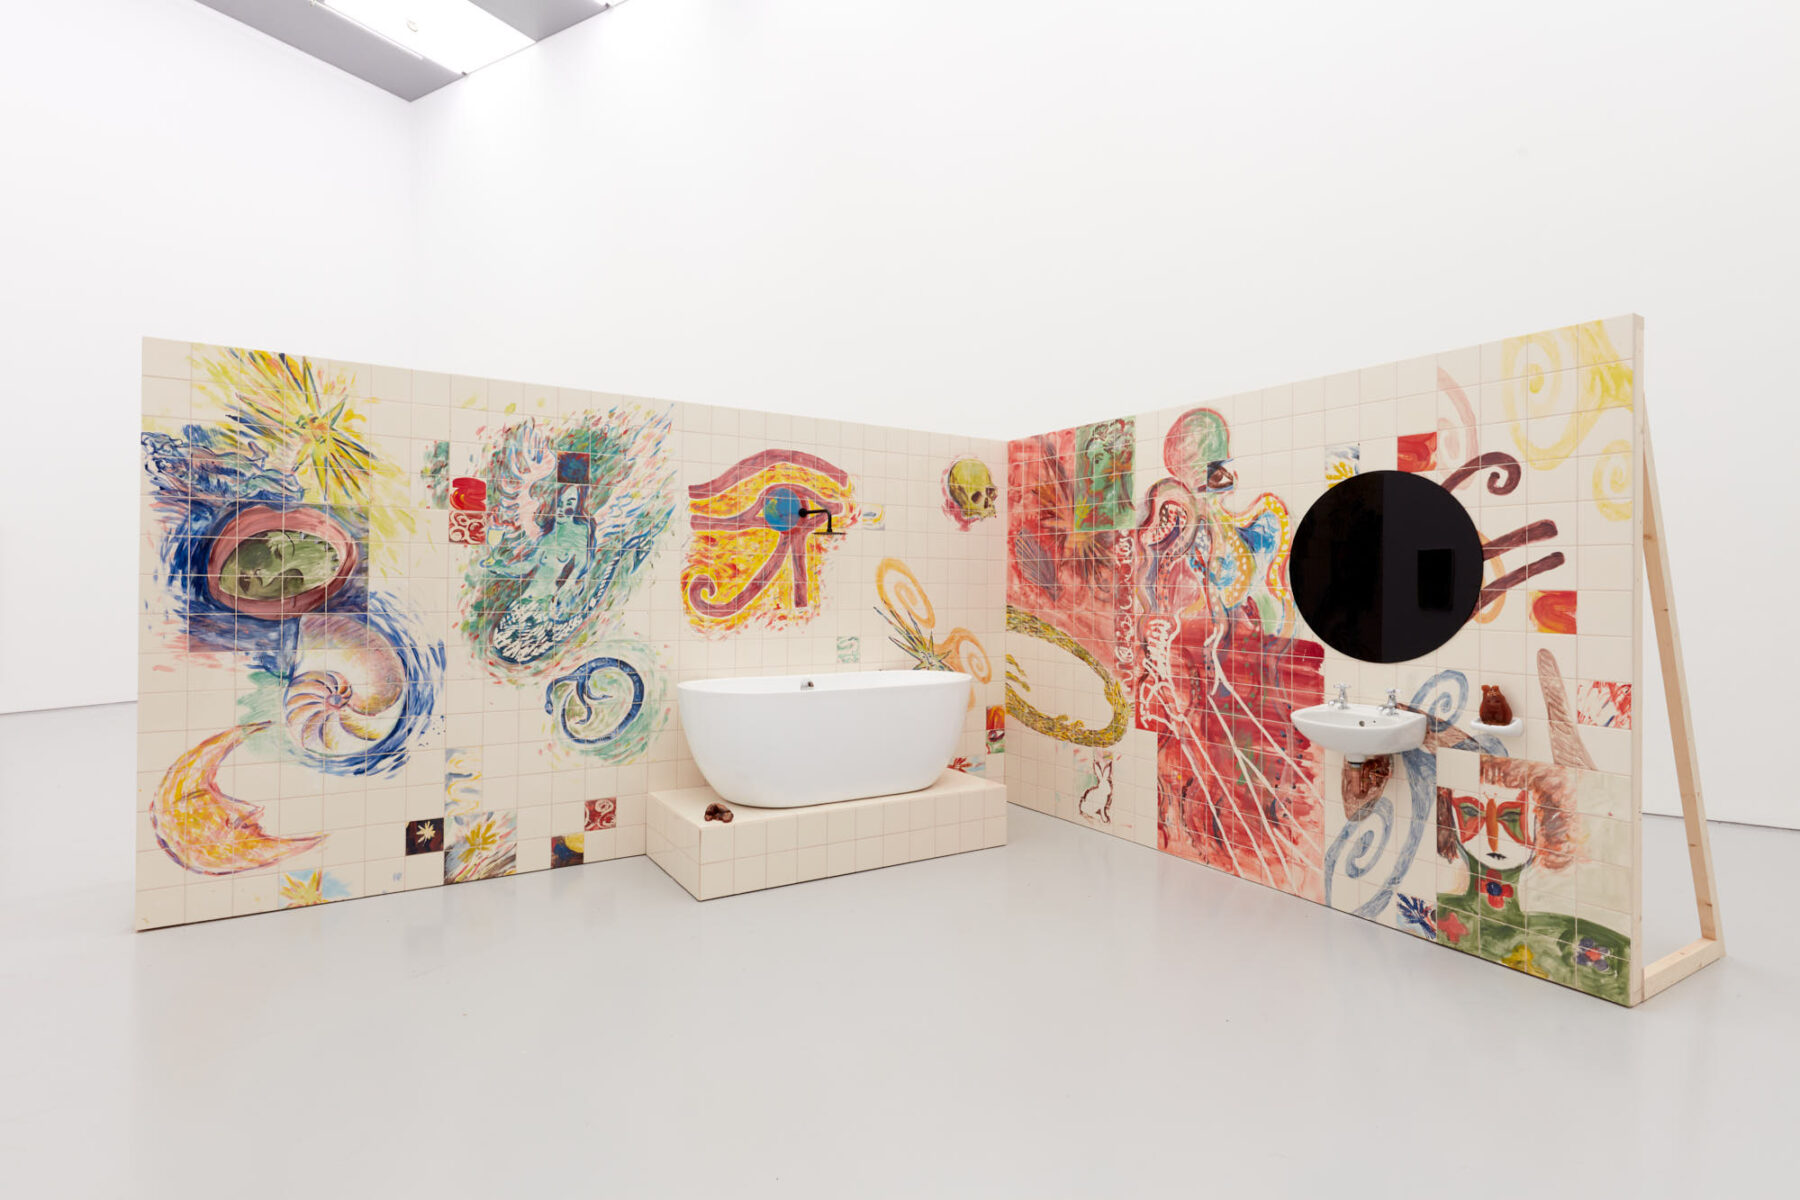 Installation view of Lucy Stein's exhibition Wet Room at Spike Island